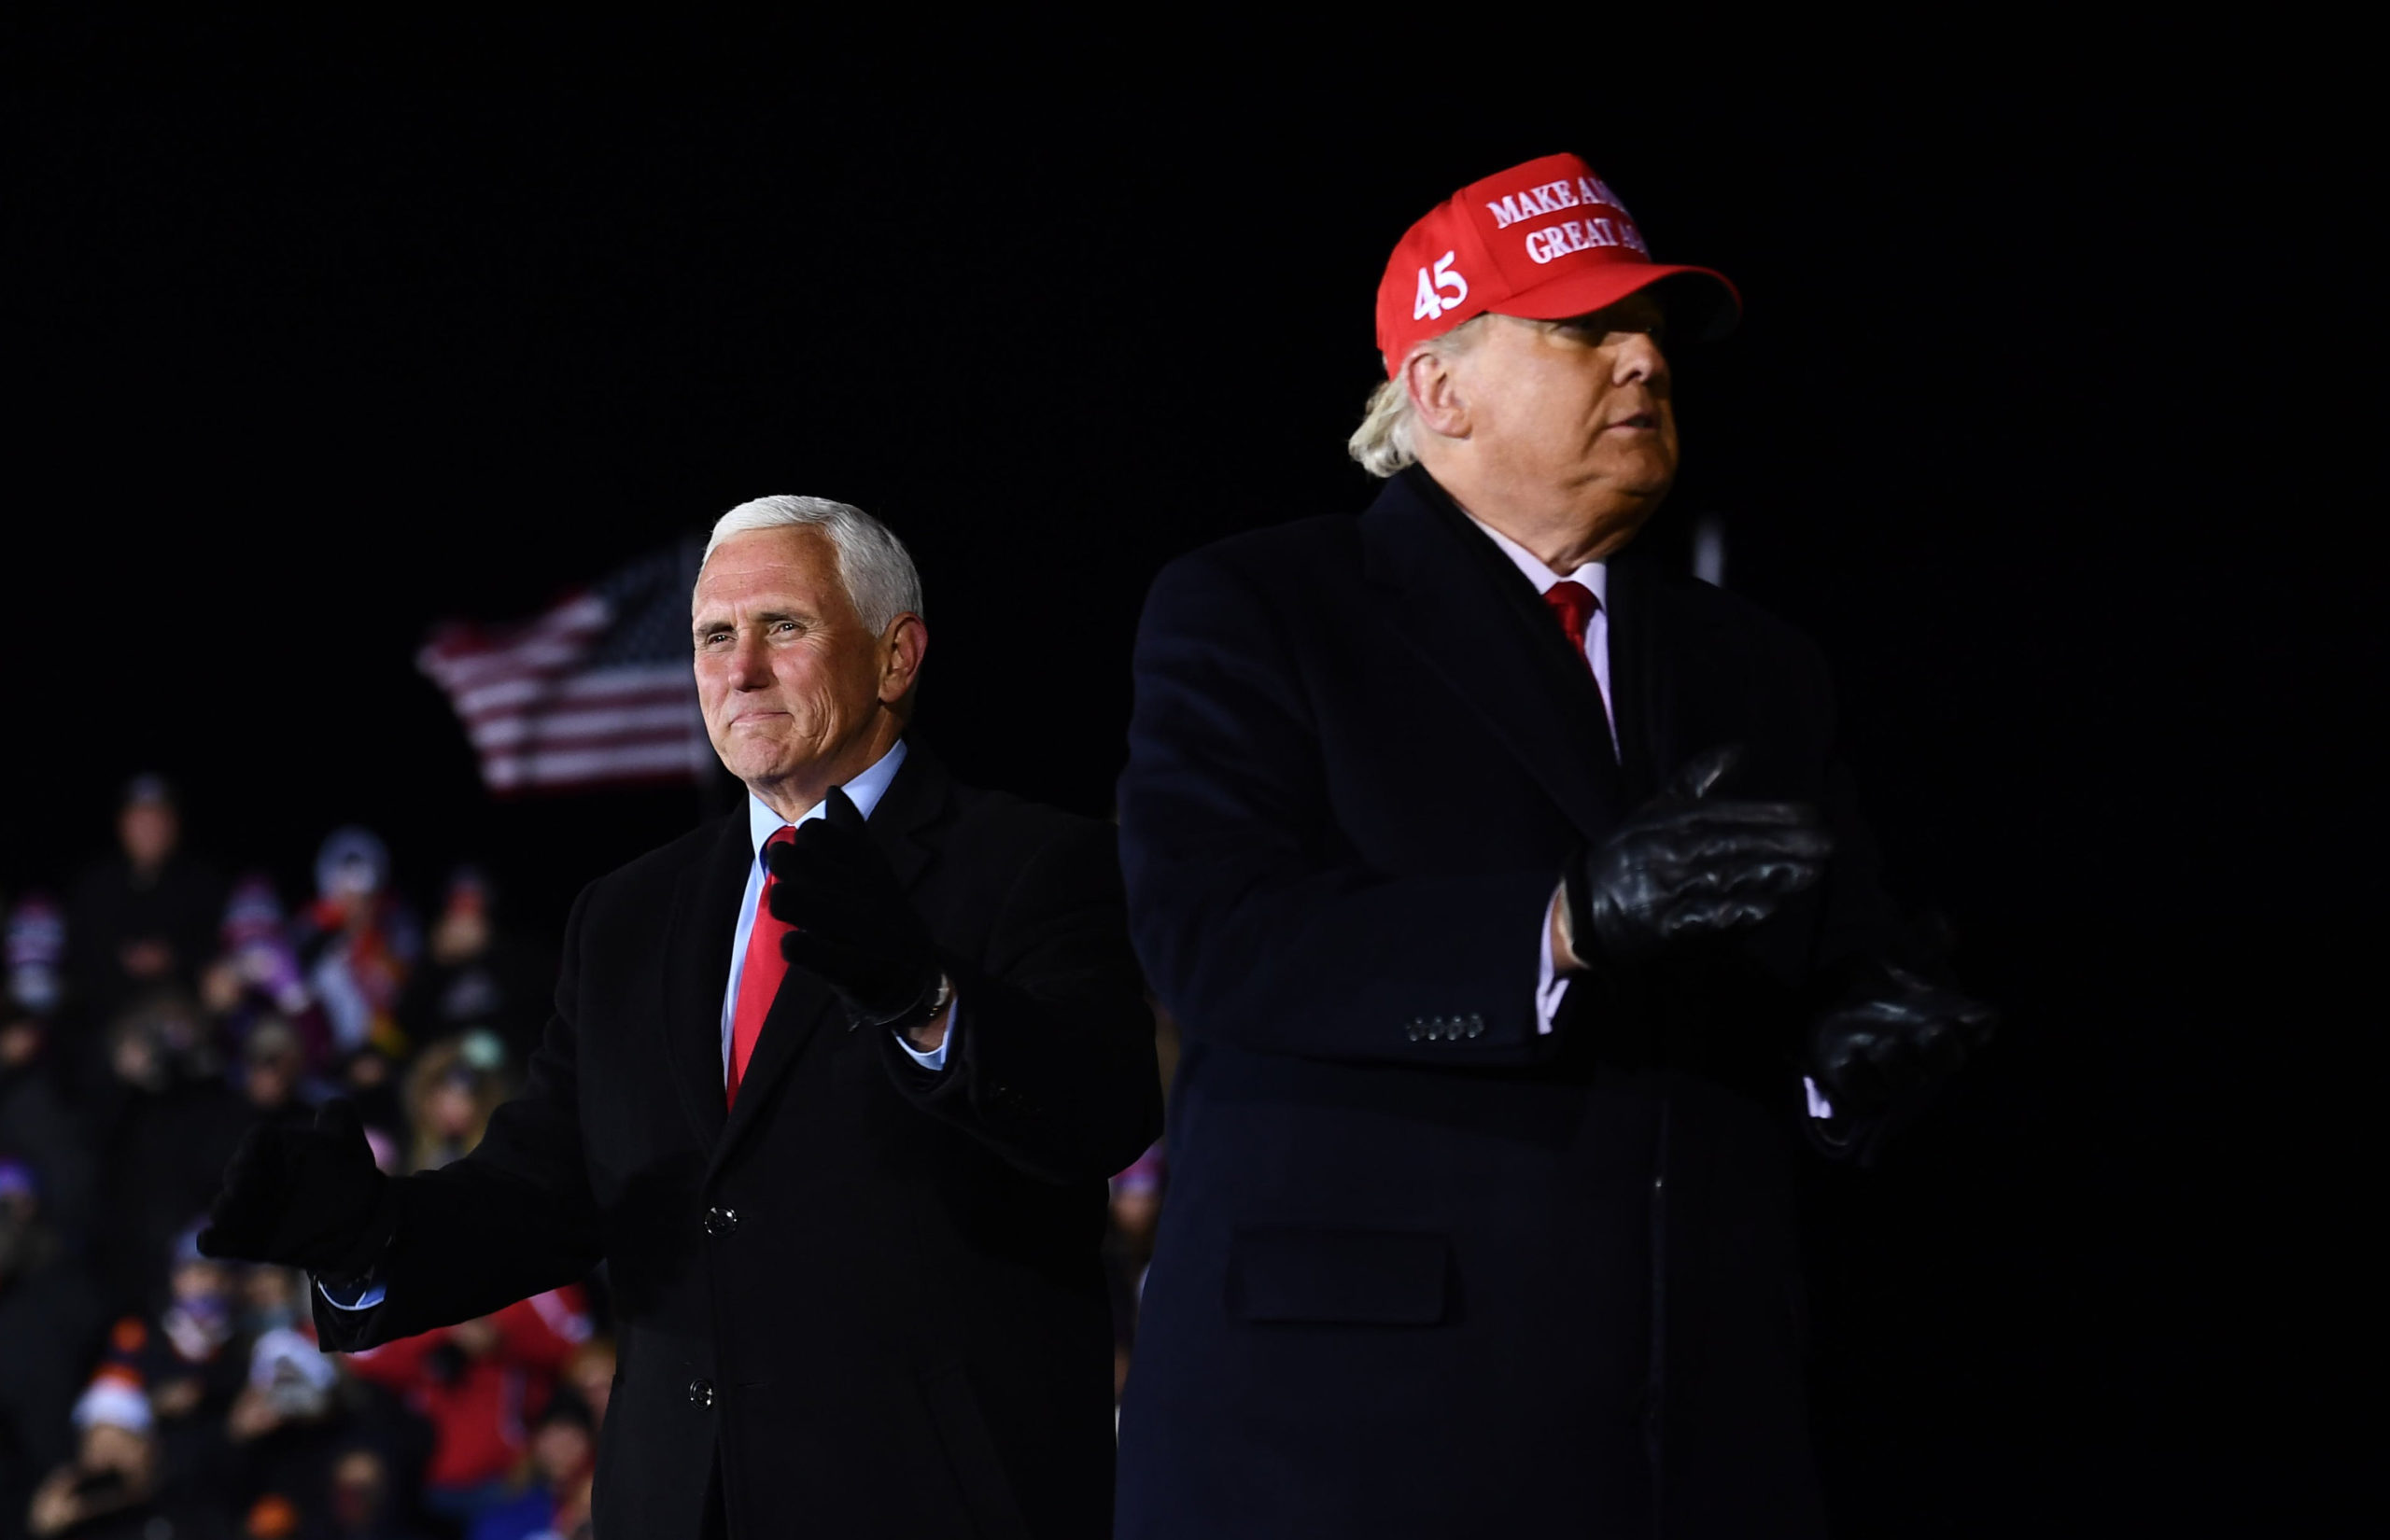 US President Donald Trump stands on stage with Vice President Mike Pence at the conclusion of his final Make America Great Again rally of the 2020 US Presidential campaign at Gerald R. Ford International Airport November 3, 2020, in Grand Rapids, Michigan. (Photo by BRENDAN SMIALOWSKI/AFP via Getty Images)